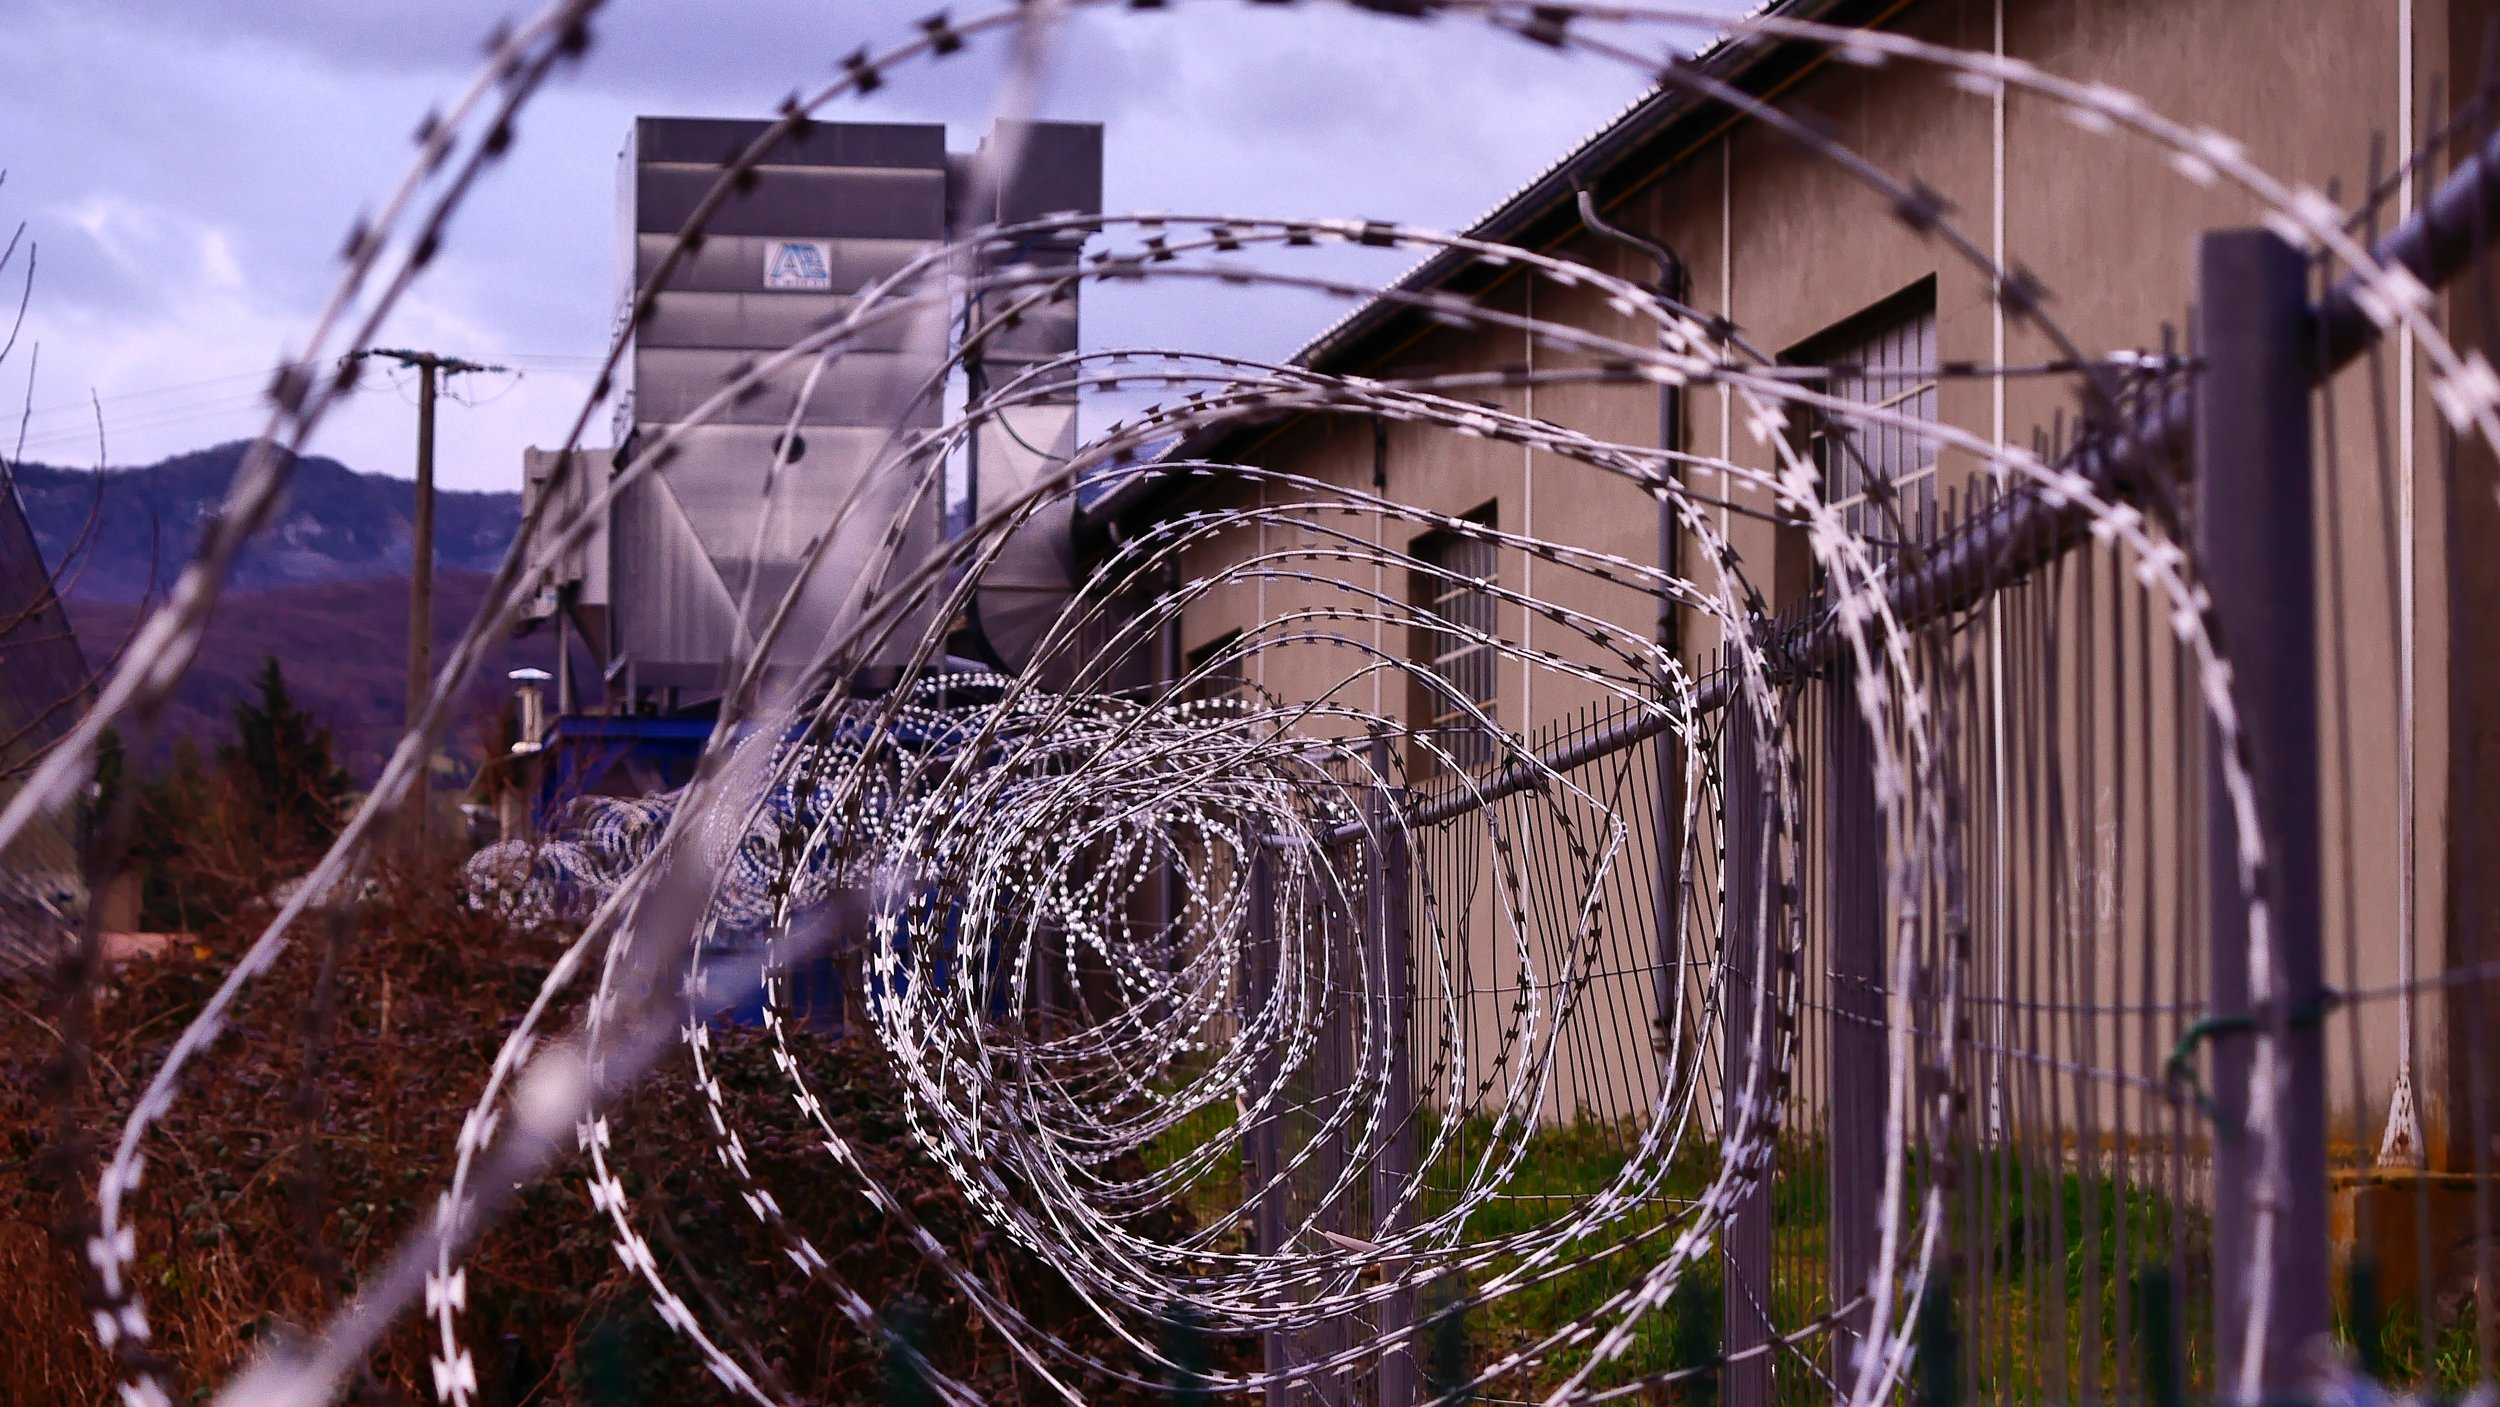 Prison barbed wires. Photo by Hedi Benyounes.